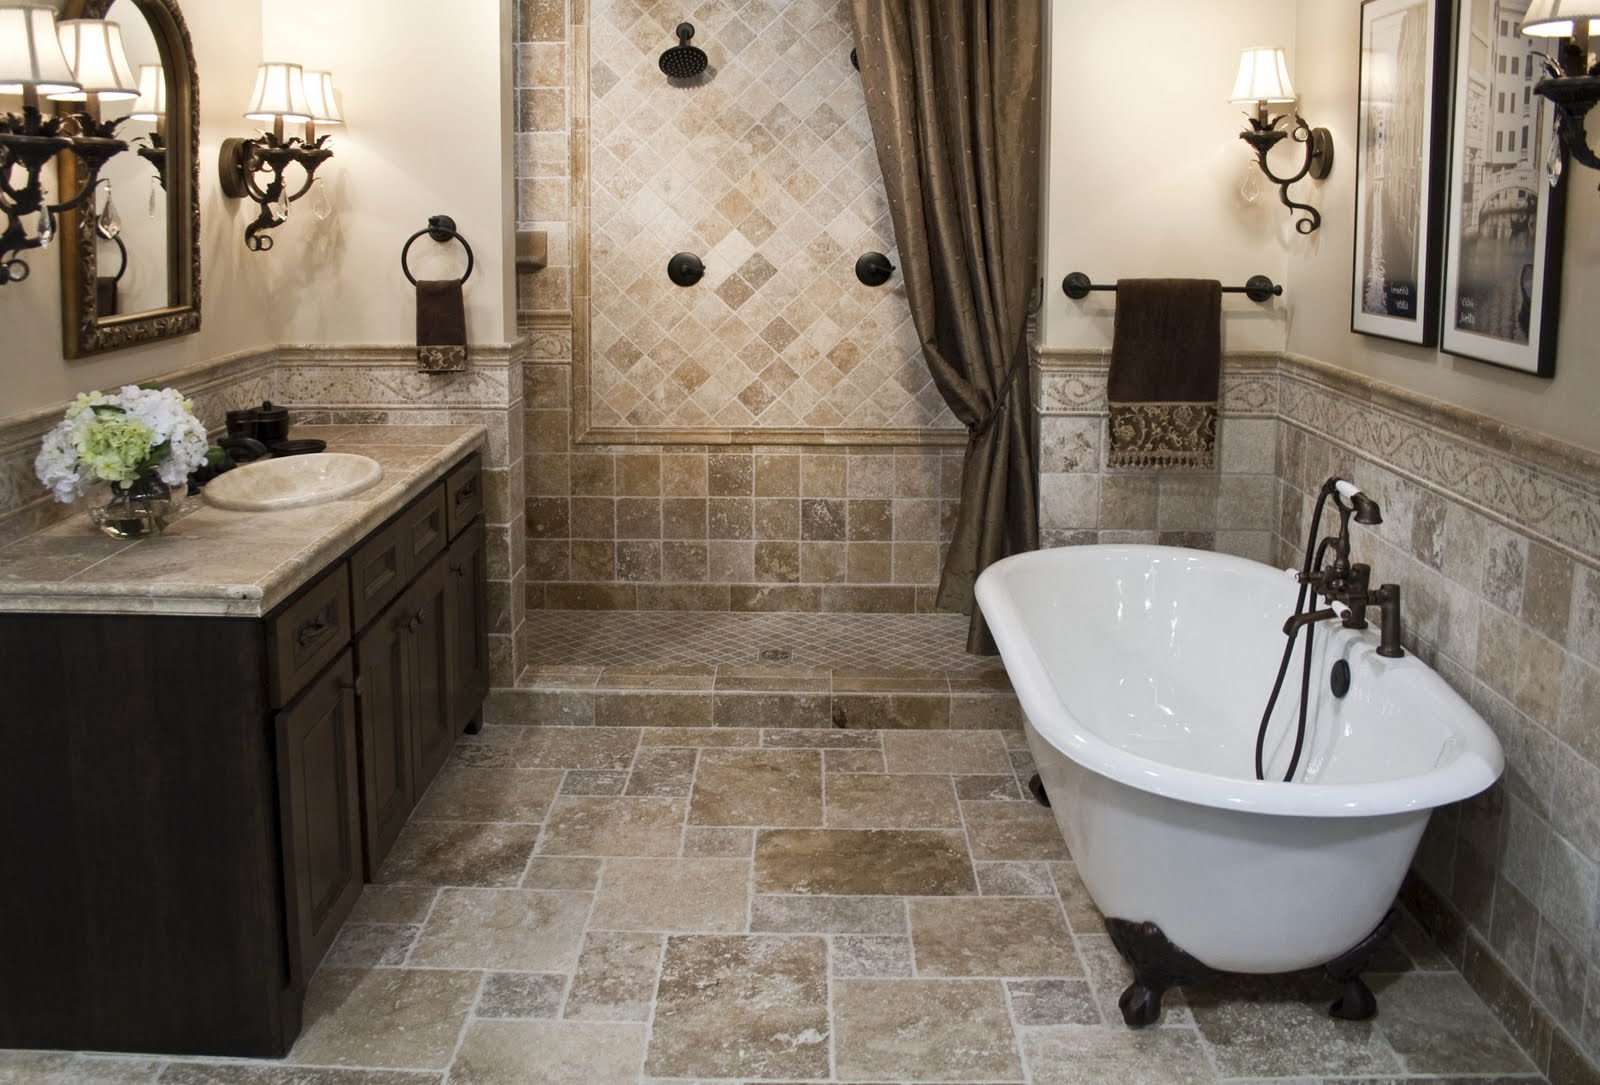 Renovate bathrooms -  Cost To Renovate Small Bathroom